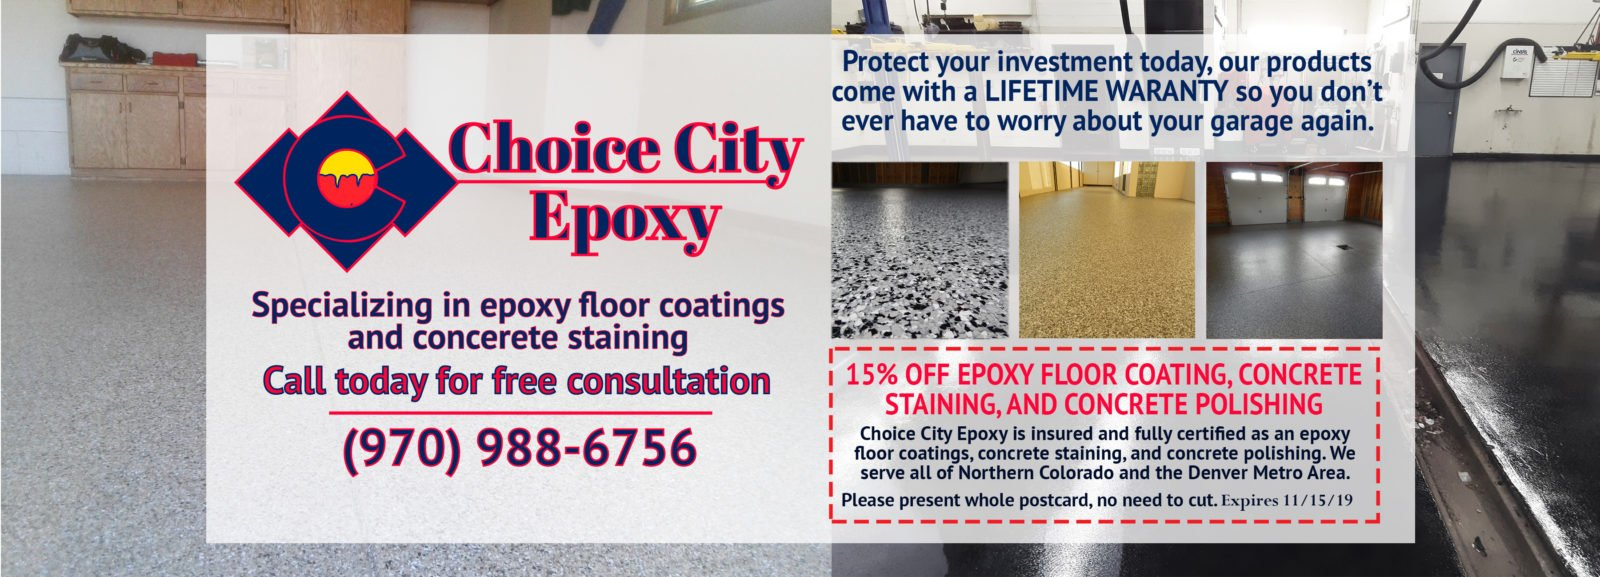 Choice City Epoxy Floor Coatings in Fort Collins